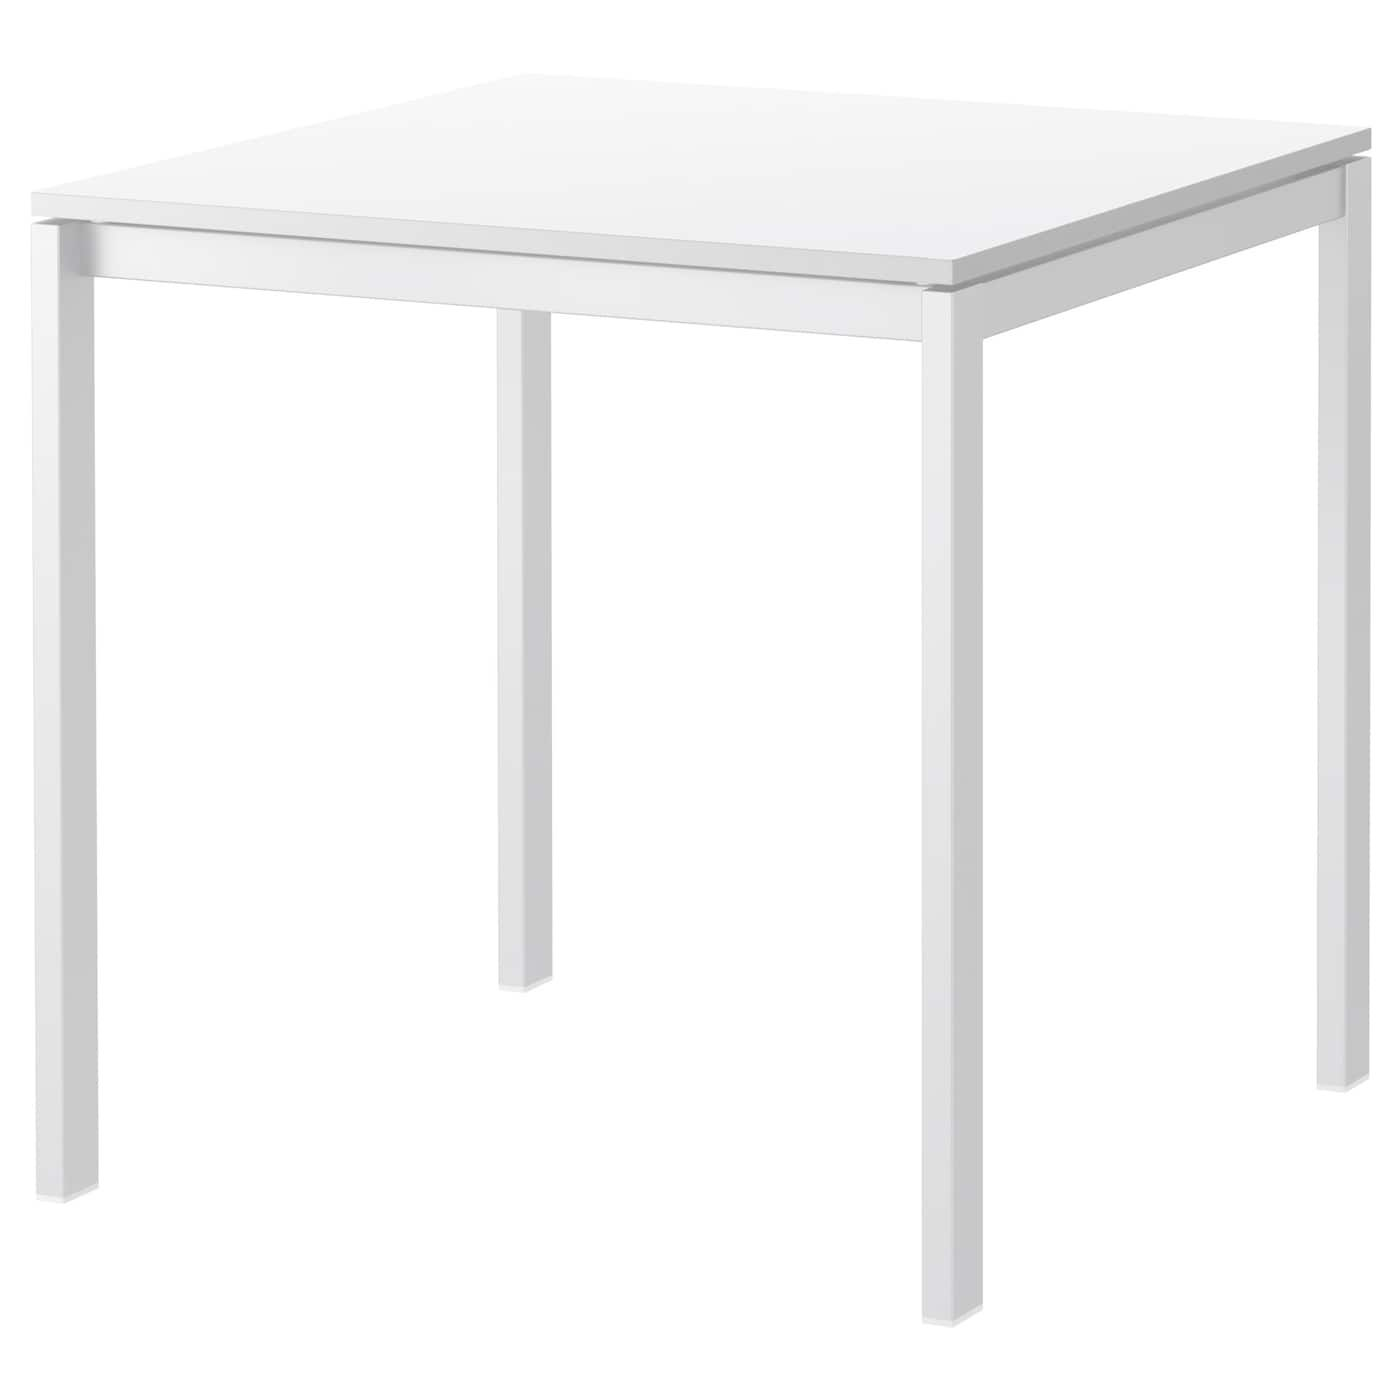 Melltorp Table White 75x75 Cm Ikea Table Contemporary Wood Dining Table Table Makeover